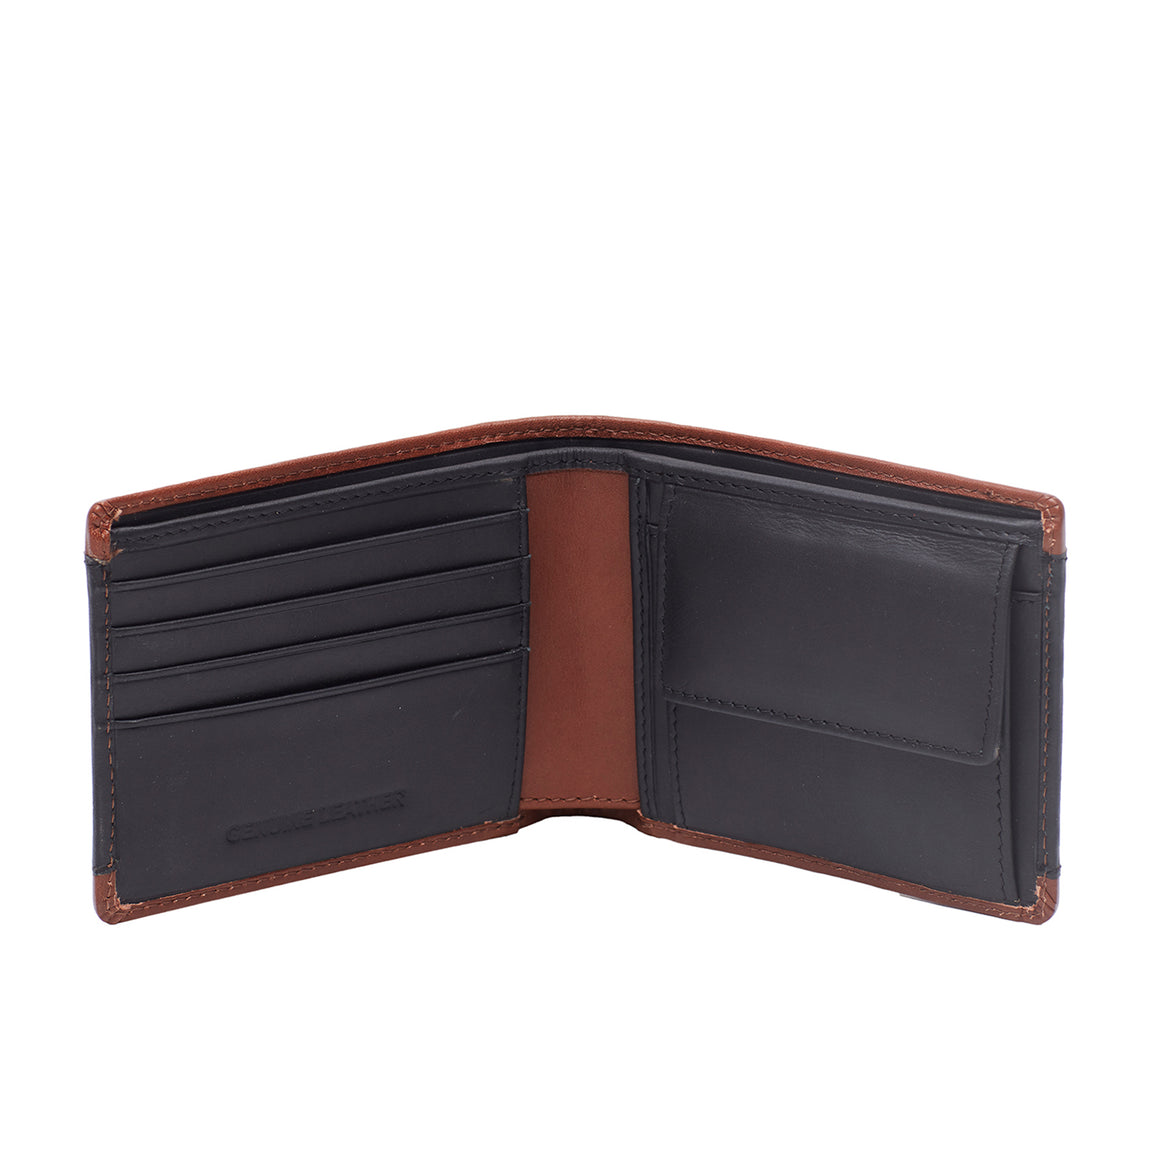 WT 0030 - TOHL FIERA MEN'S WALLET - CHARCOAL BLACK